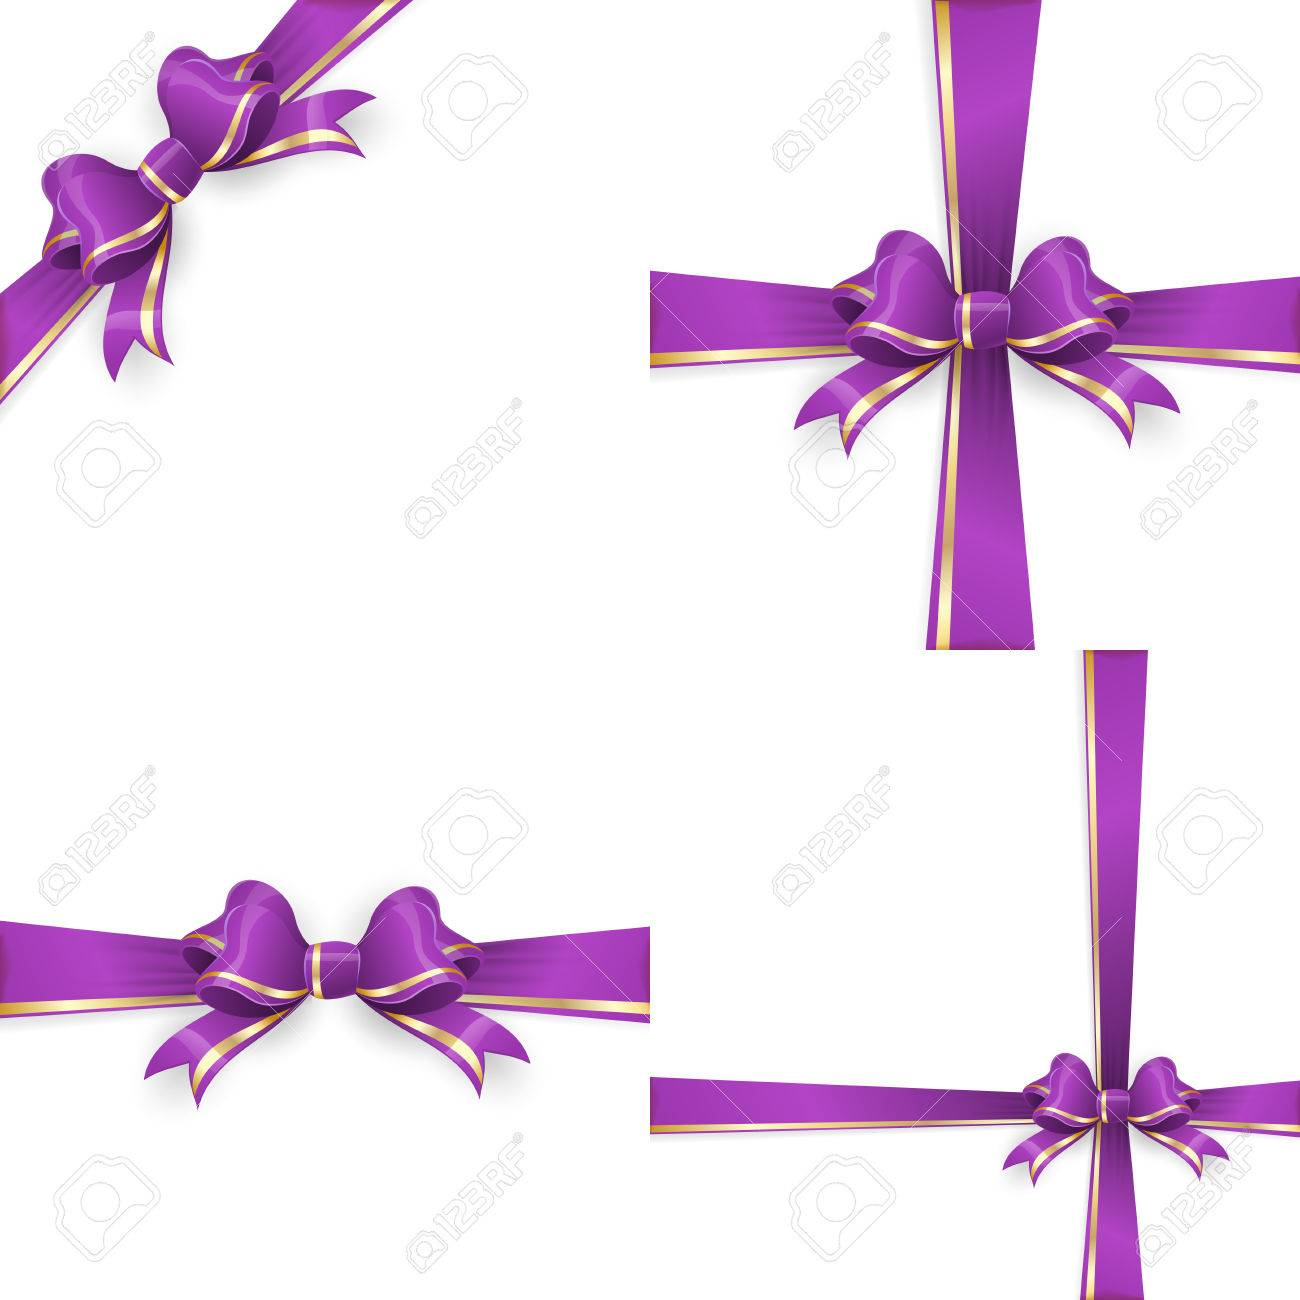 Set with different gift wrapping compositions of purple gold bow and ribbon isolated on white background. purple gold bow templates. purple gold bow backgrounds. vector file included - 58656807